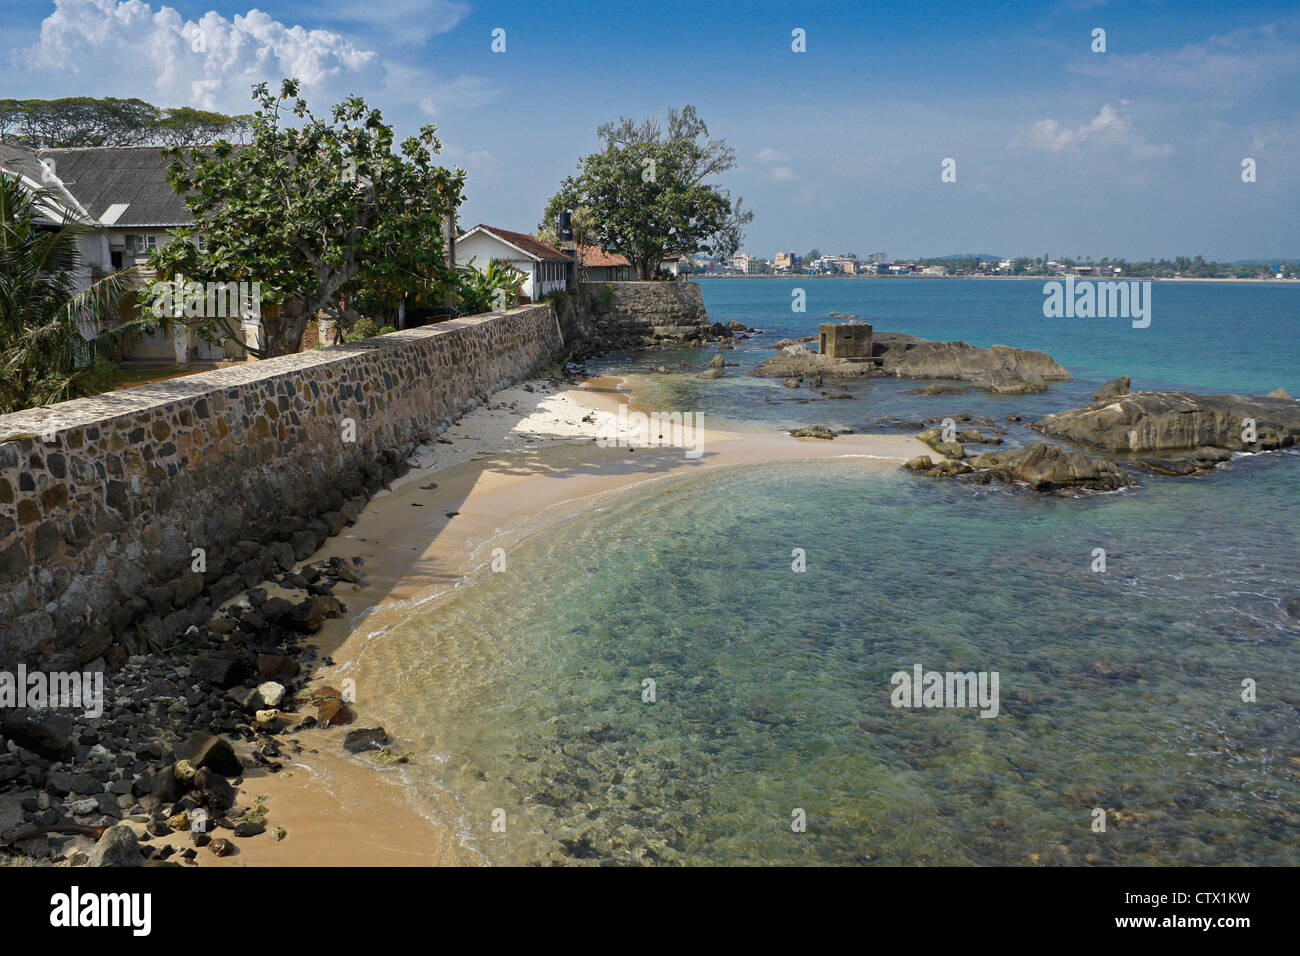 View from rampart of historic Galle Fort, Galle, Sri Lanka - Stock Image